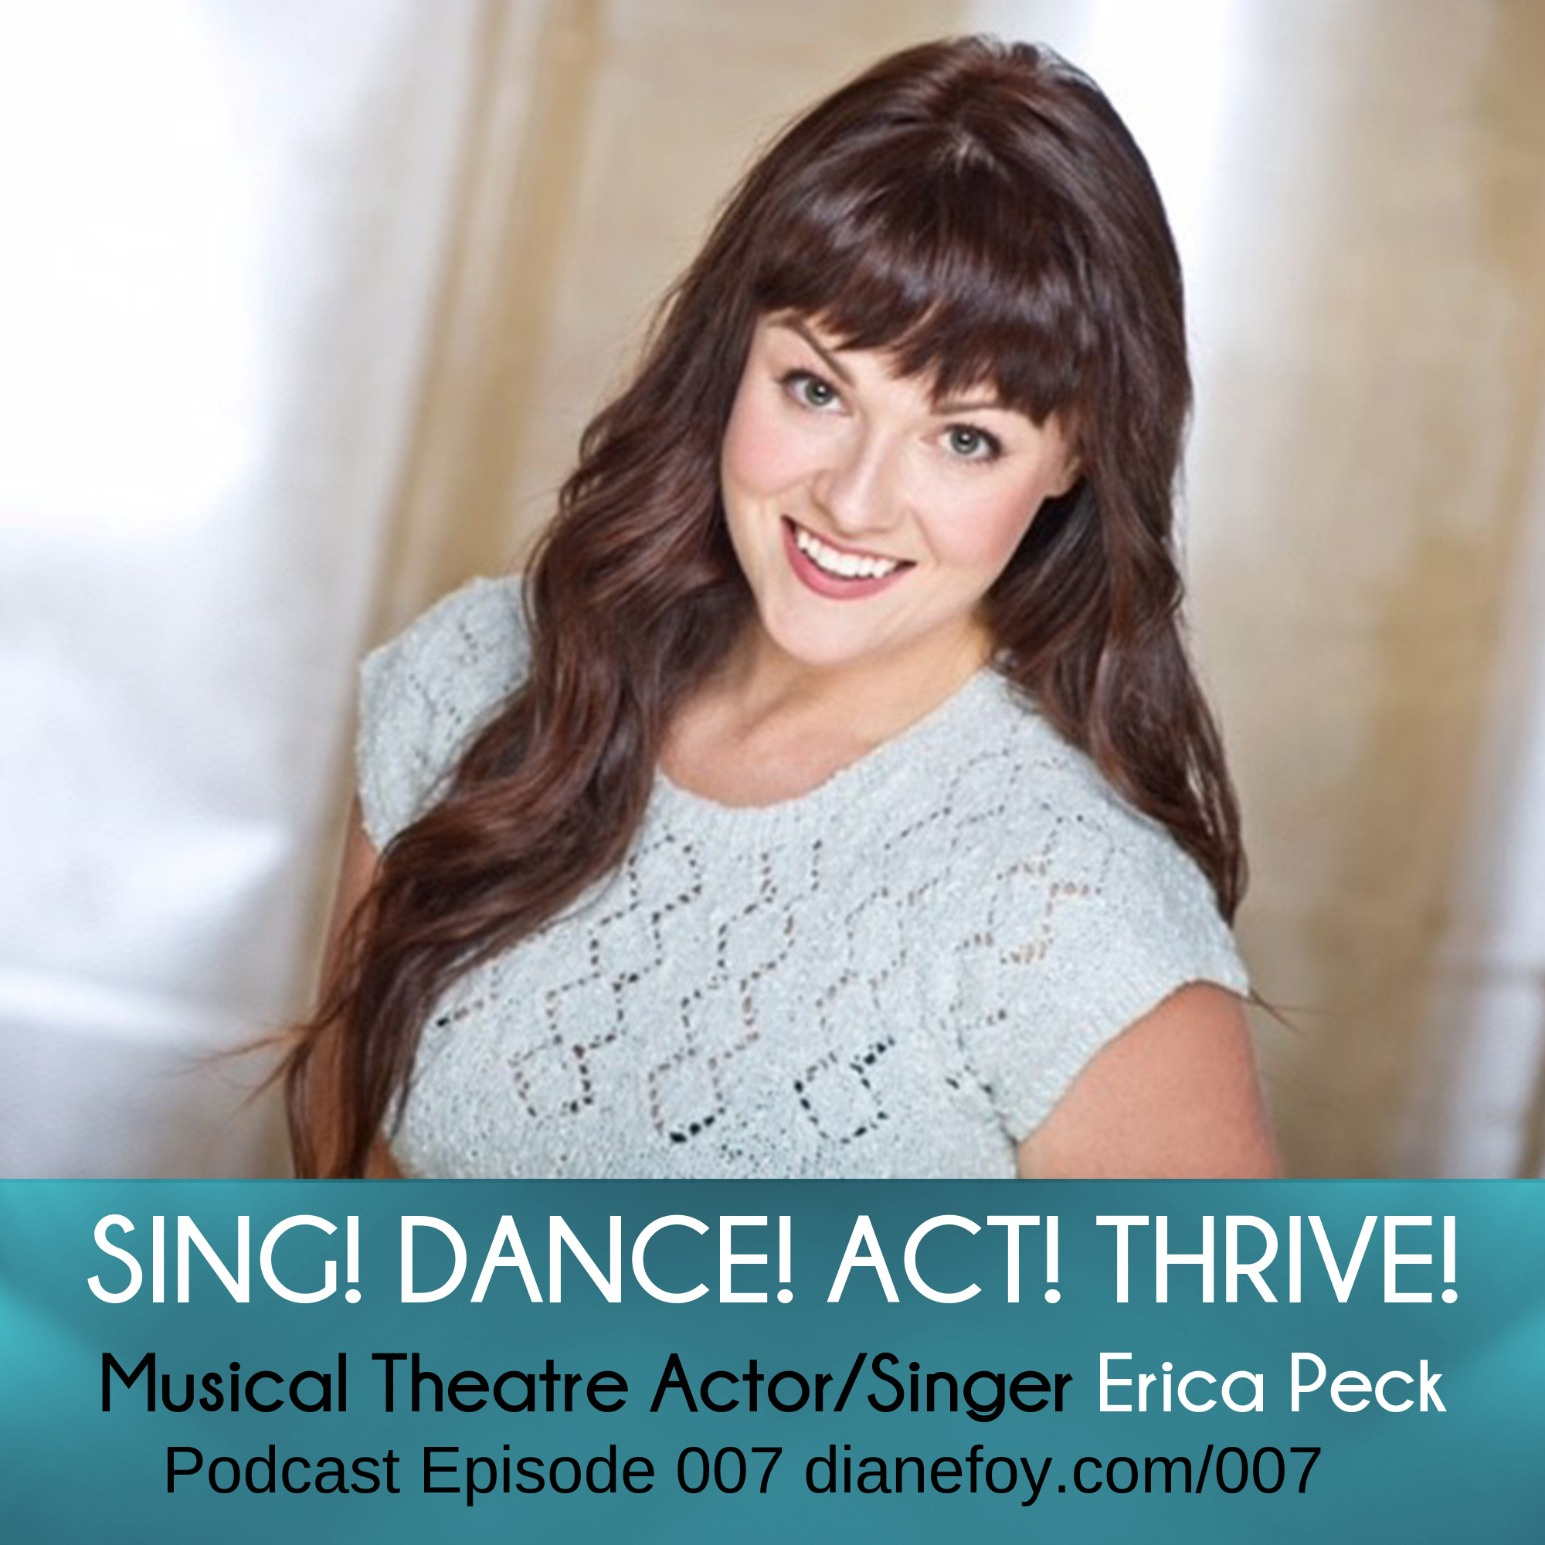 Erica Peck, Musical Theatre Actor/Singer